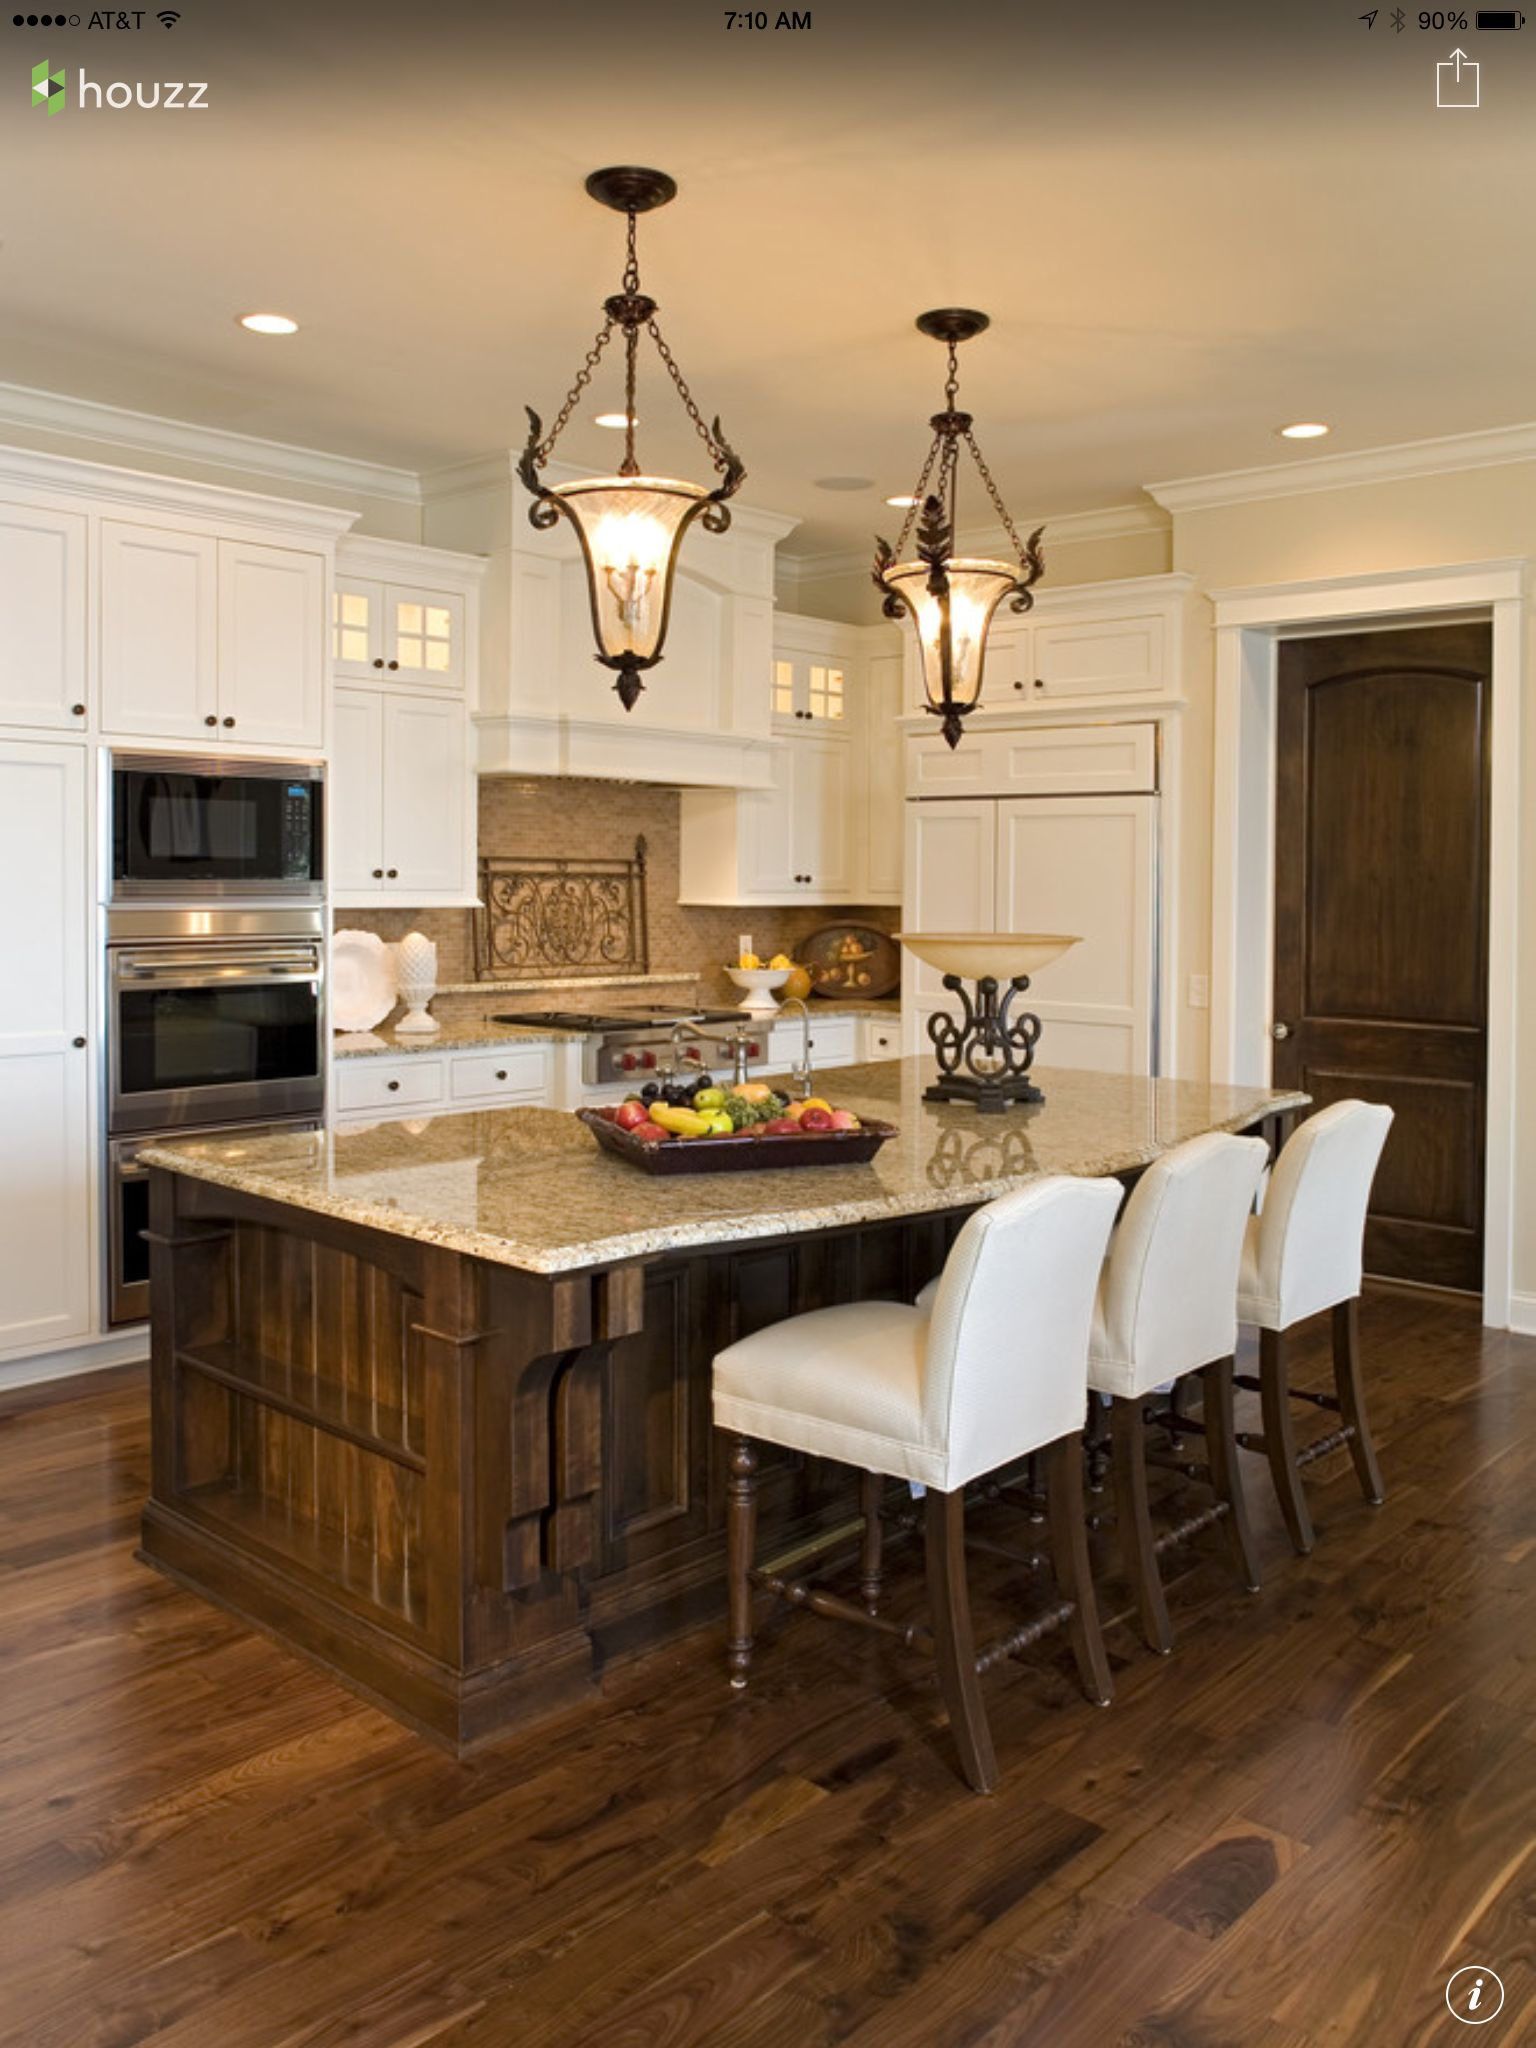 Stonewood, LLC. Kitchen. Houzz.com